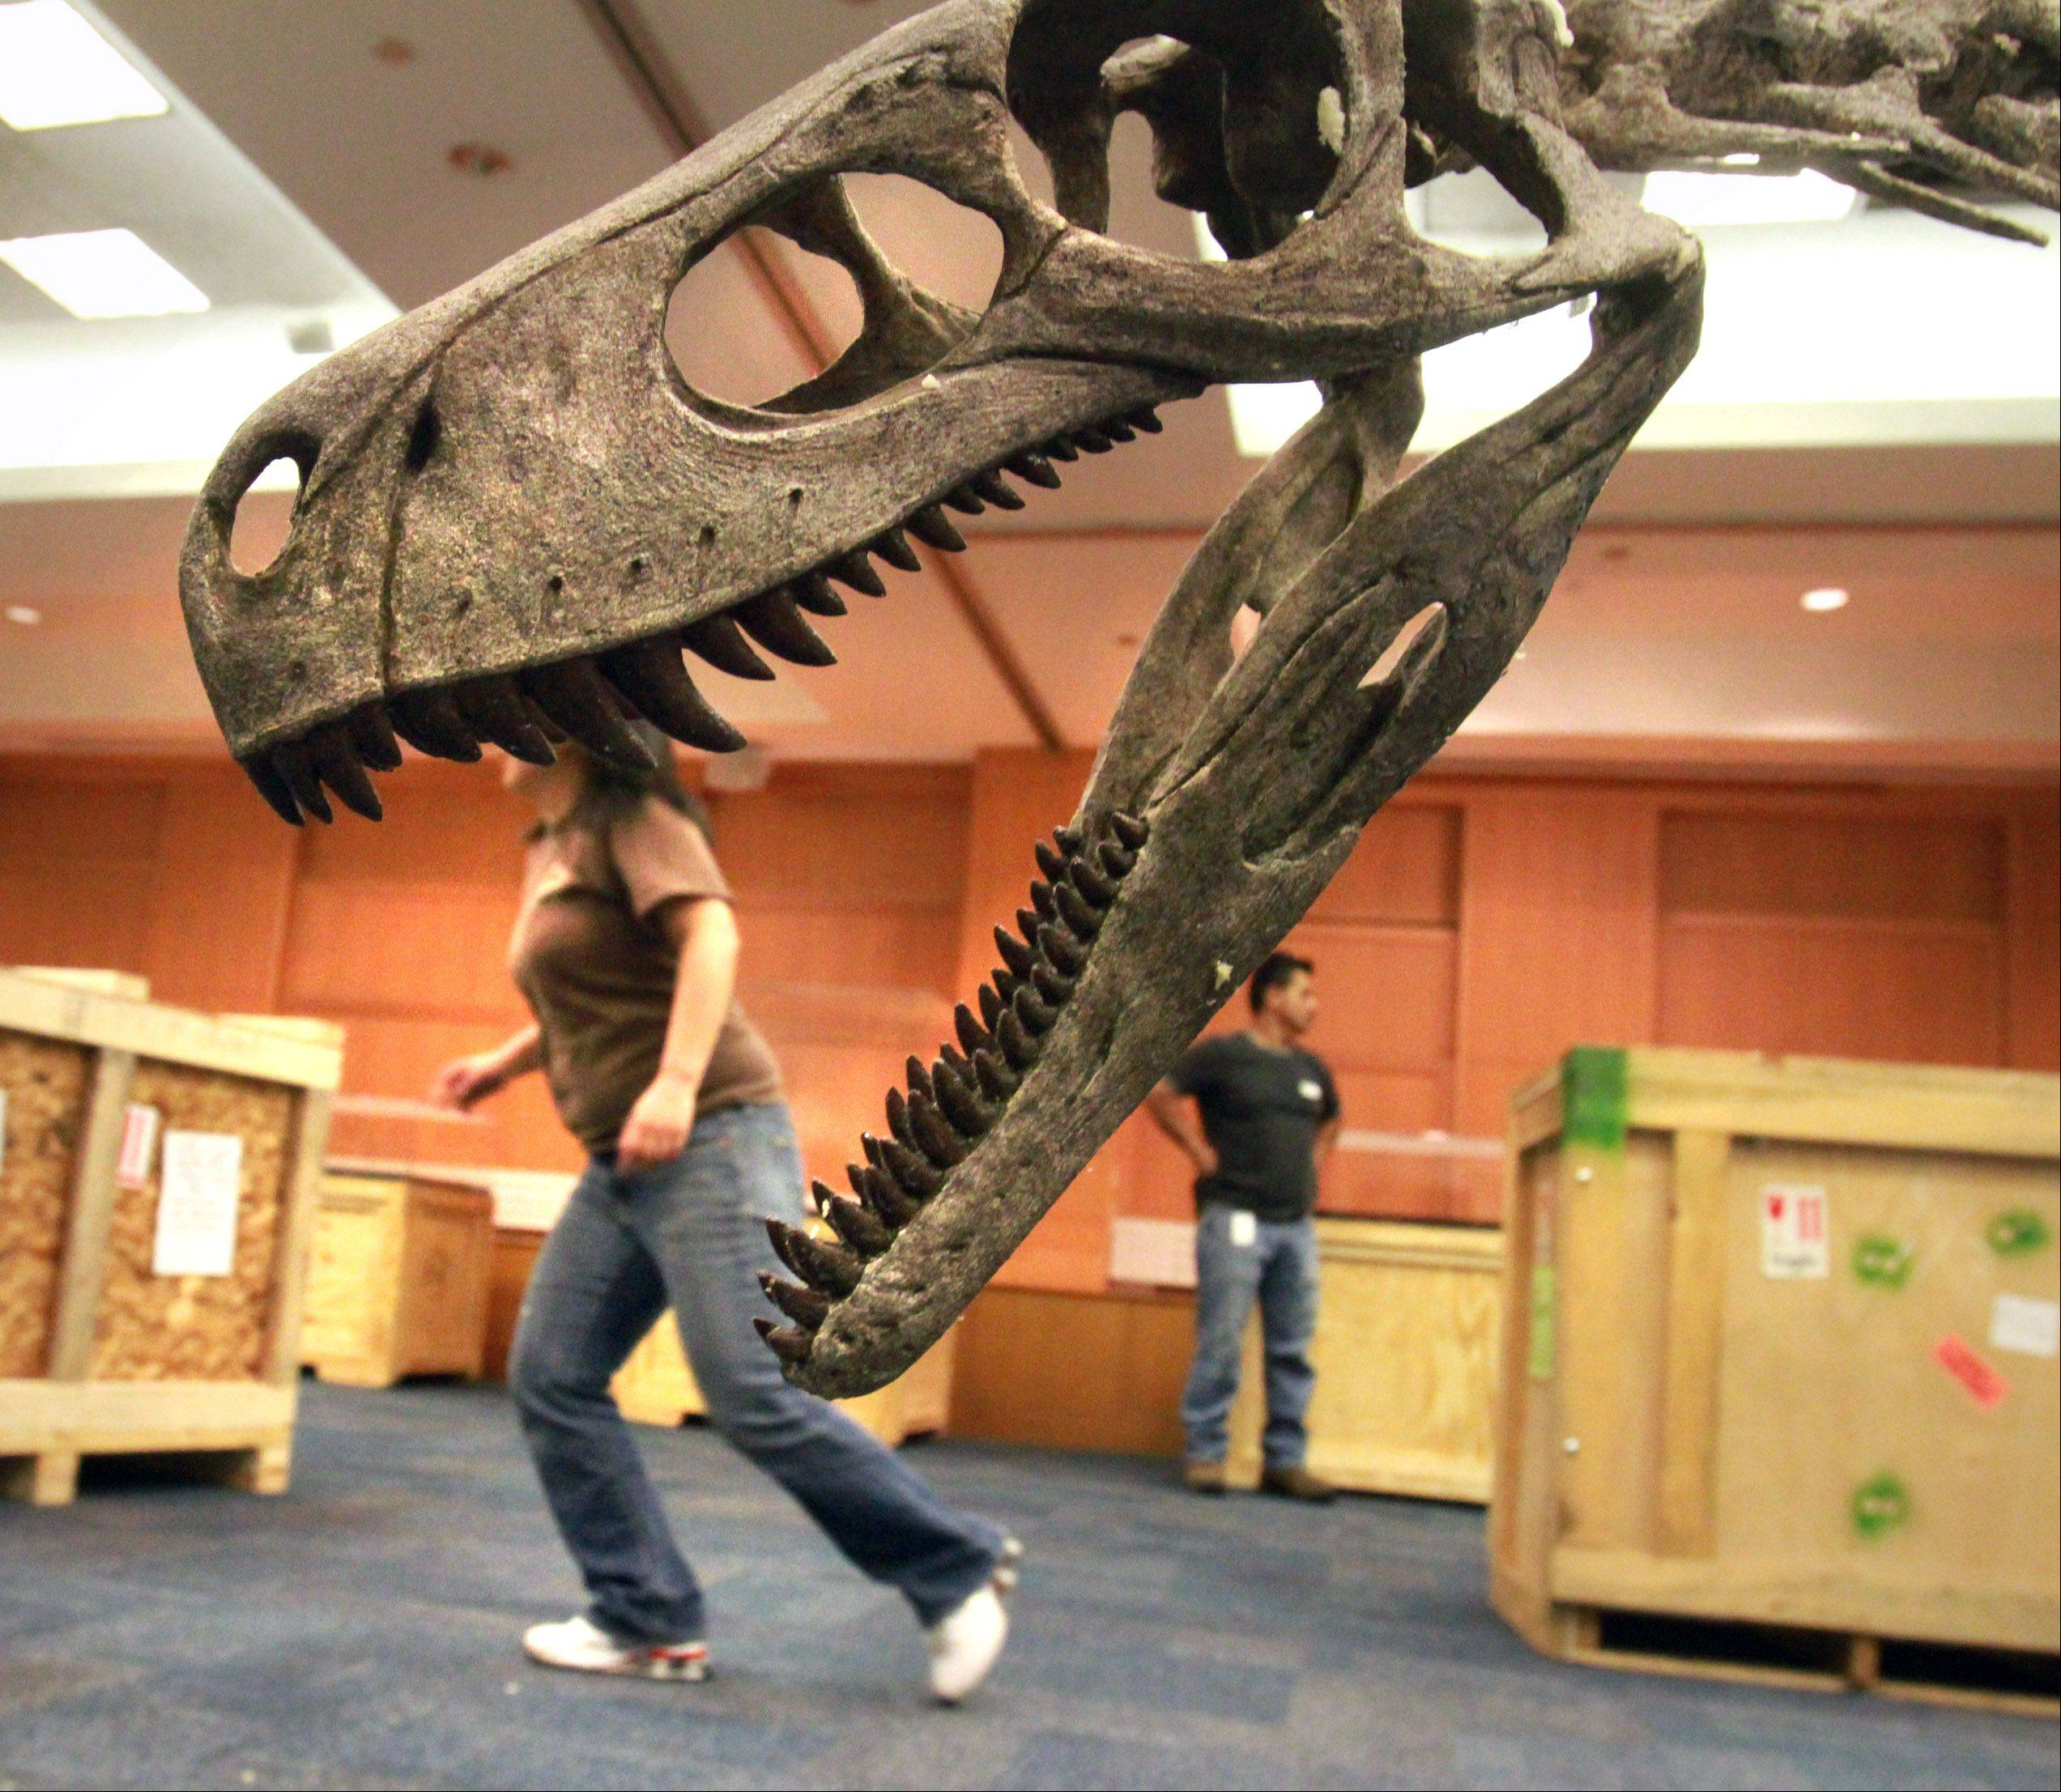 Arlington Hts. dinosaur exhibit opens Friday